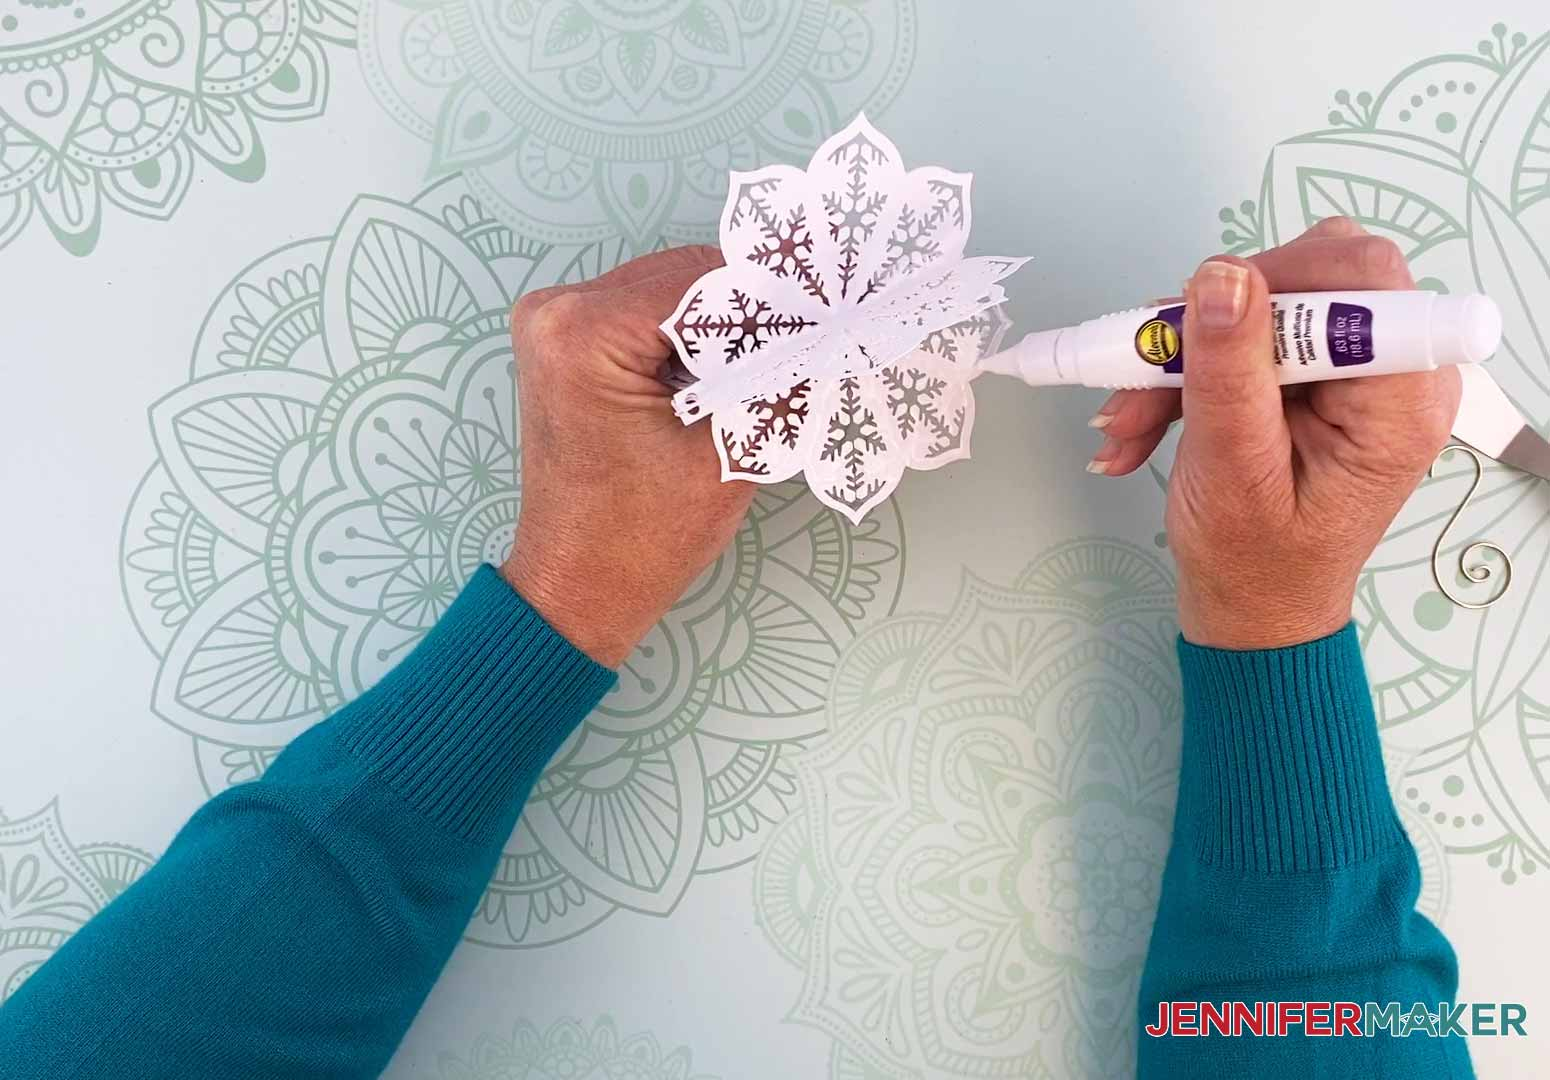 Add glue to the last panel of my diy paper ornament